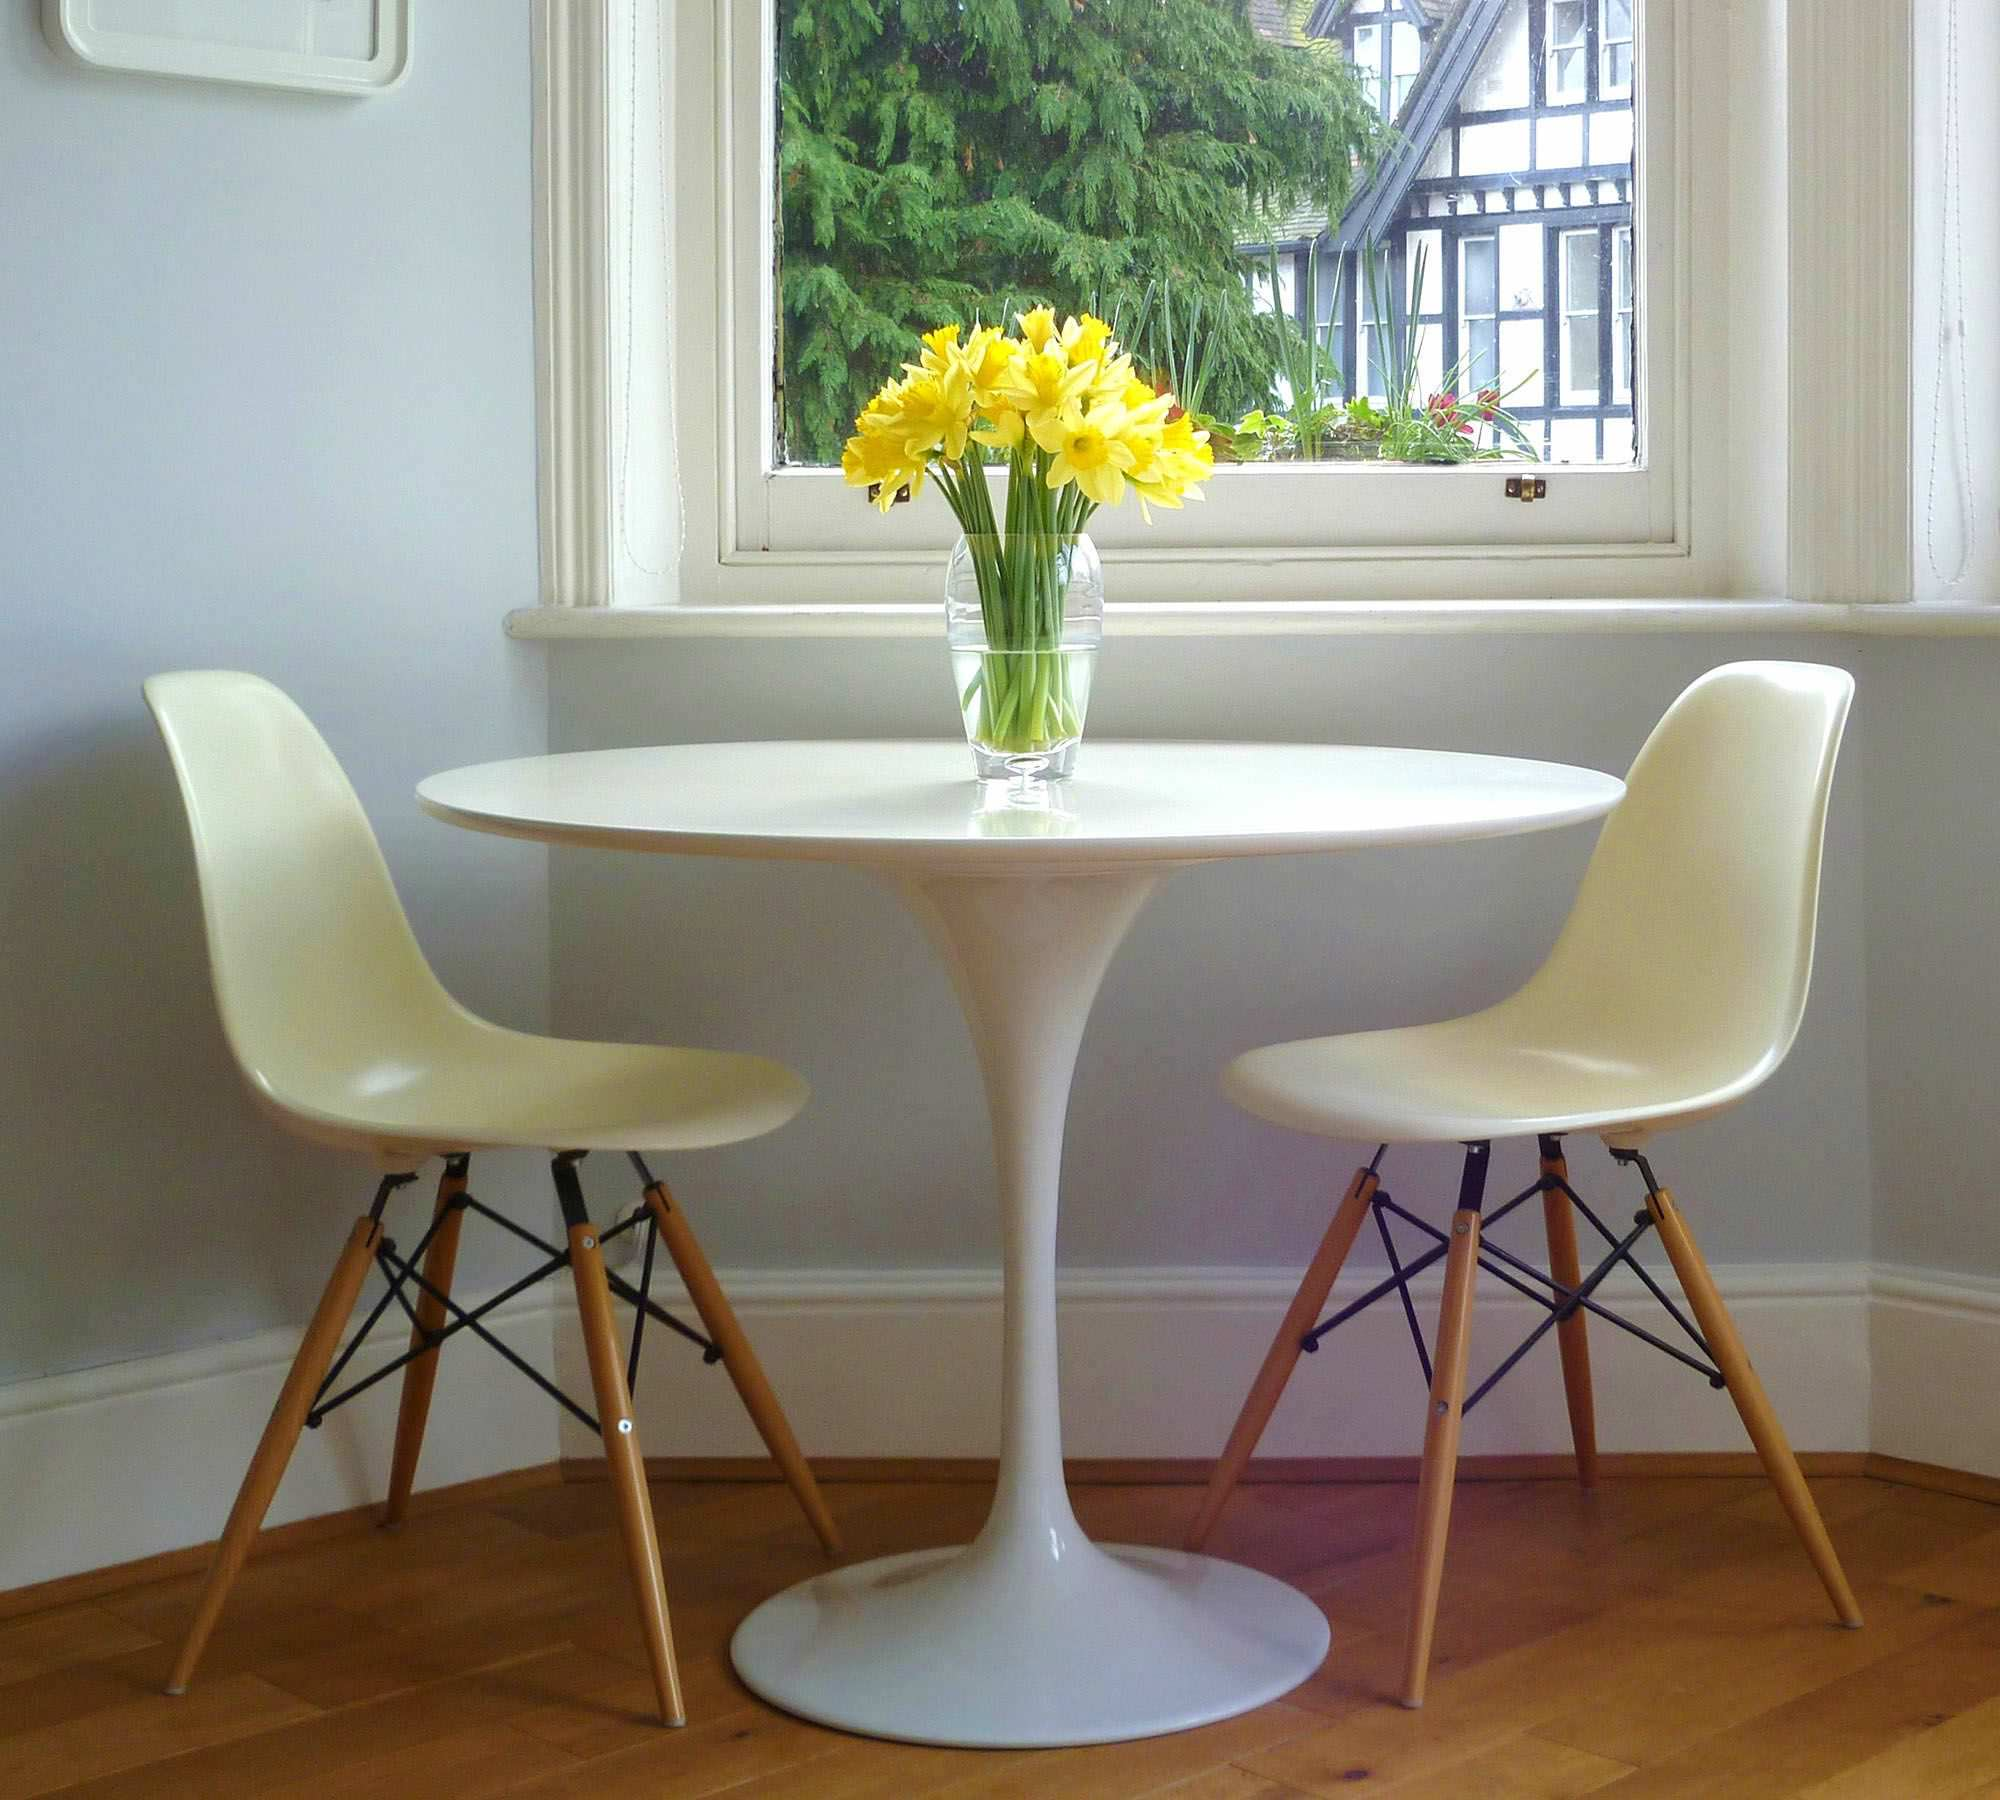 consignment table oval drift nashville tulip saarinen dining